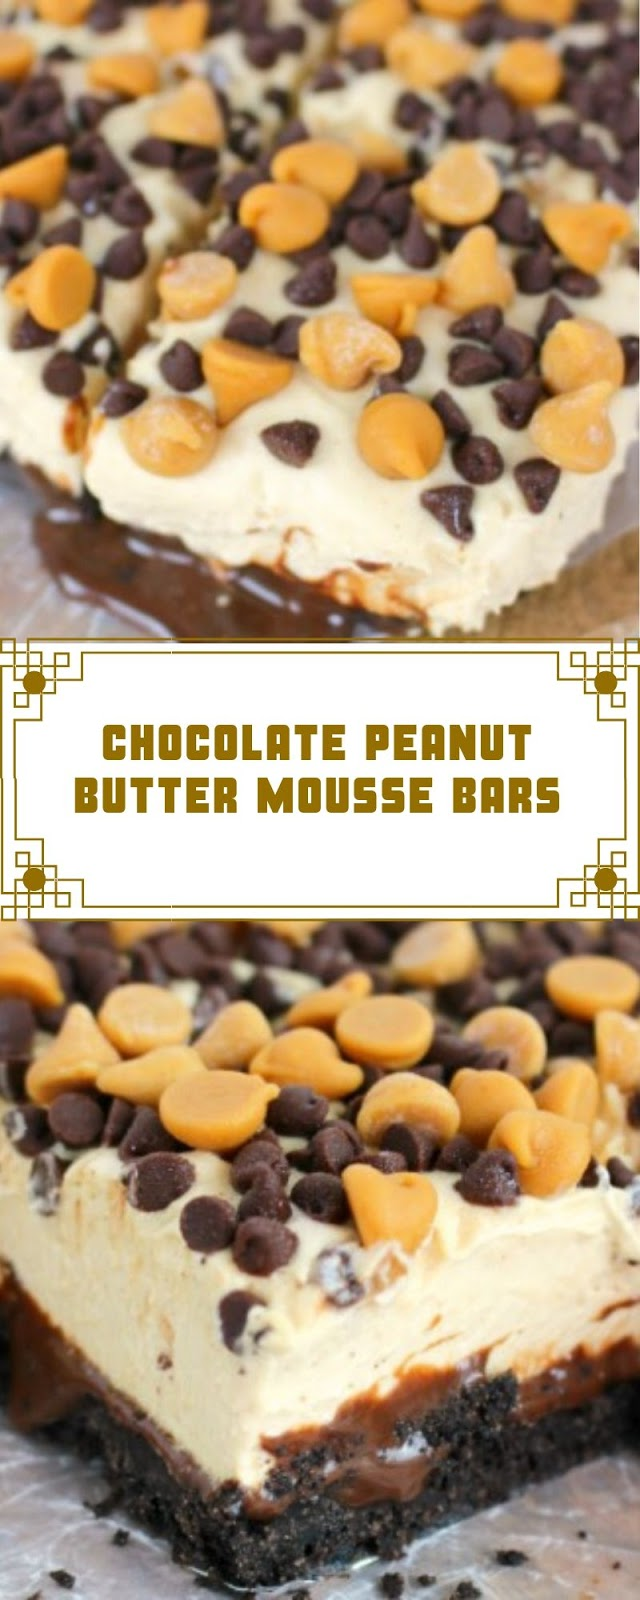 CHOCOLATE PEANUT BUTTER MOUSSE BARS